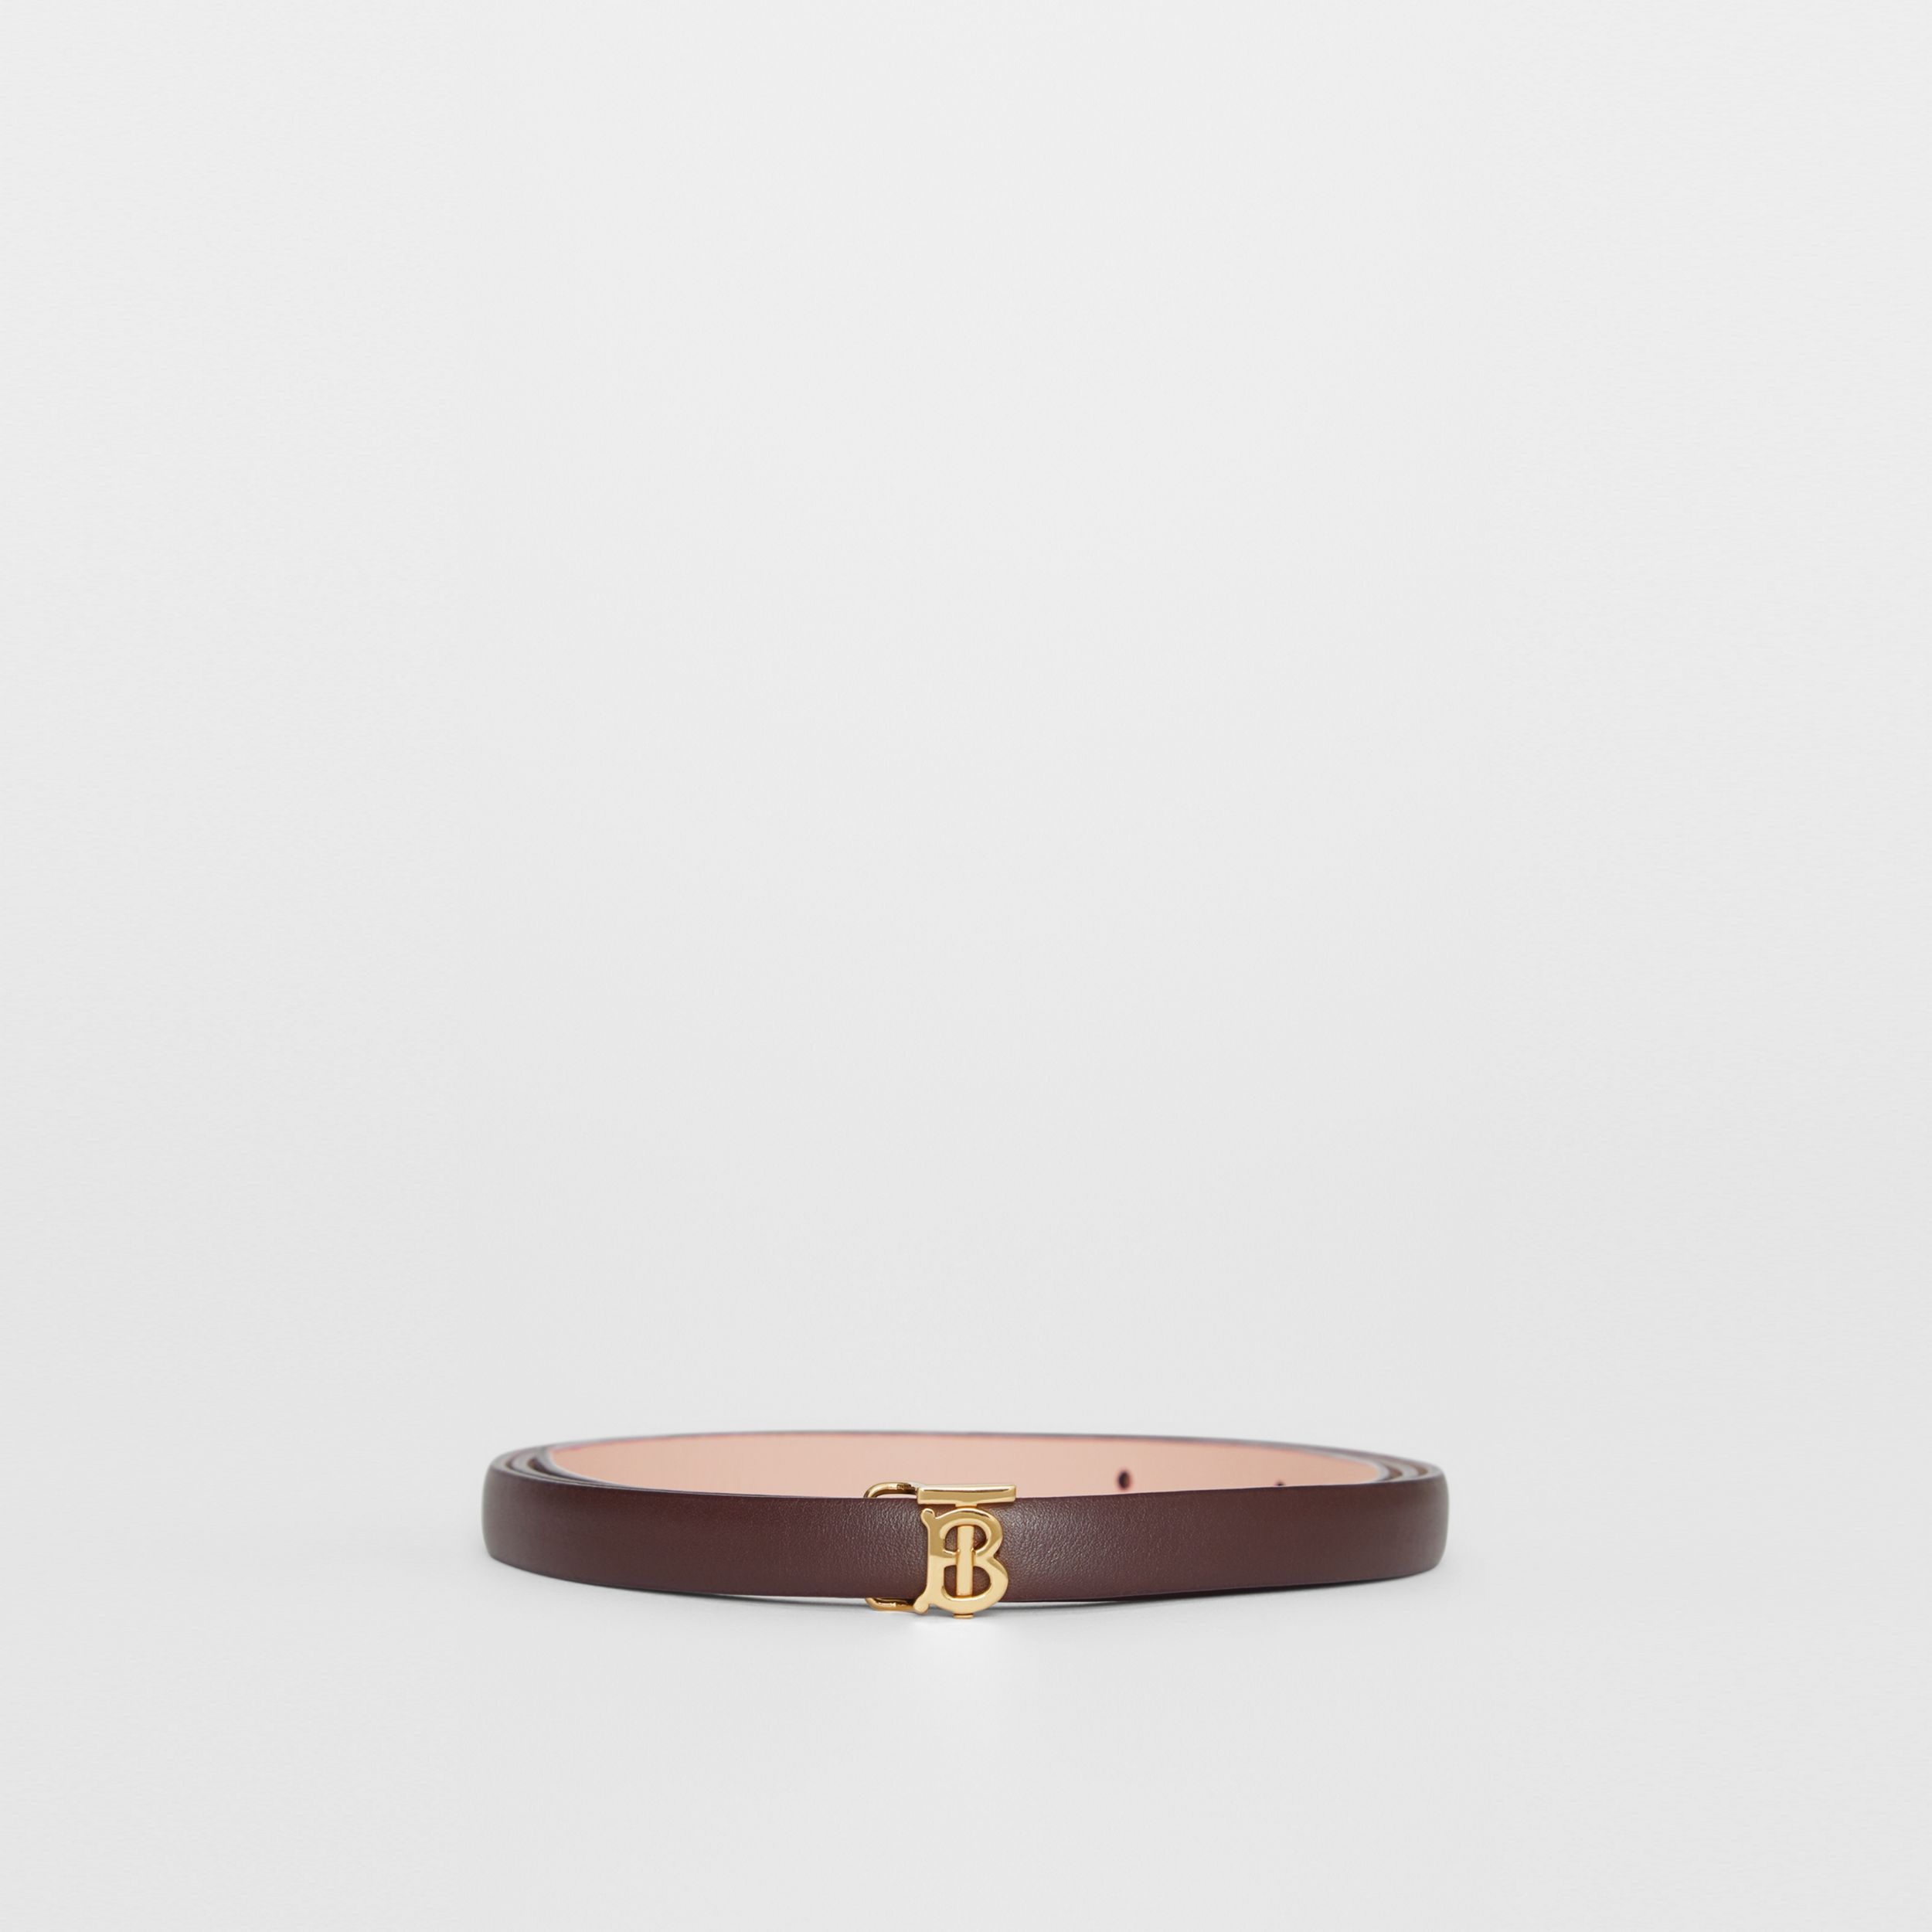 Reversible Monogram Motif Leather Wrap Belt in Oxblood/rose Beige - Women | Burberry United Kingdom - 4